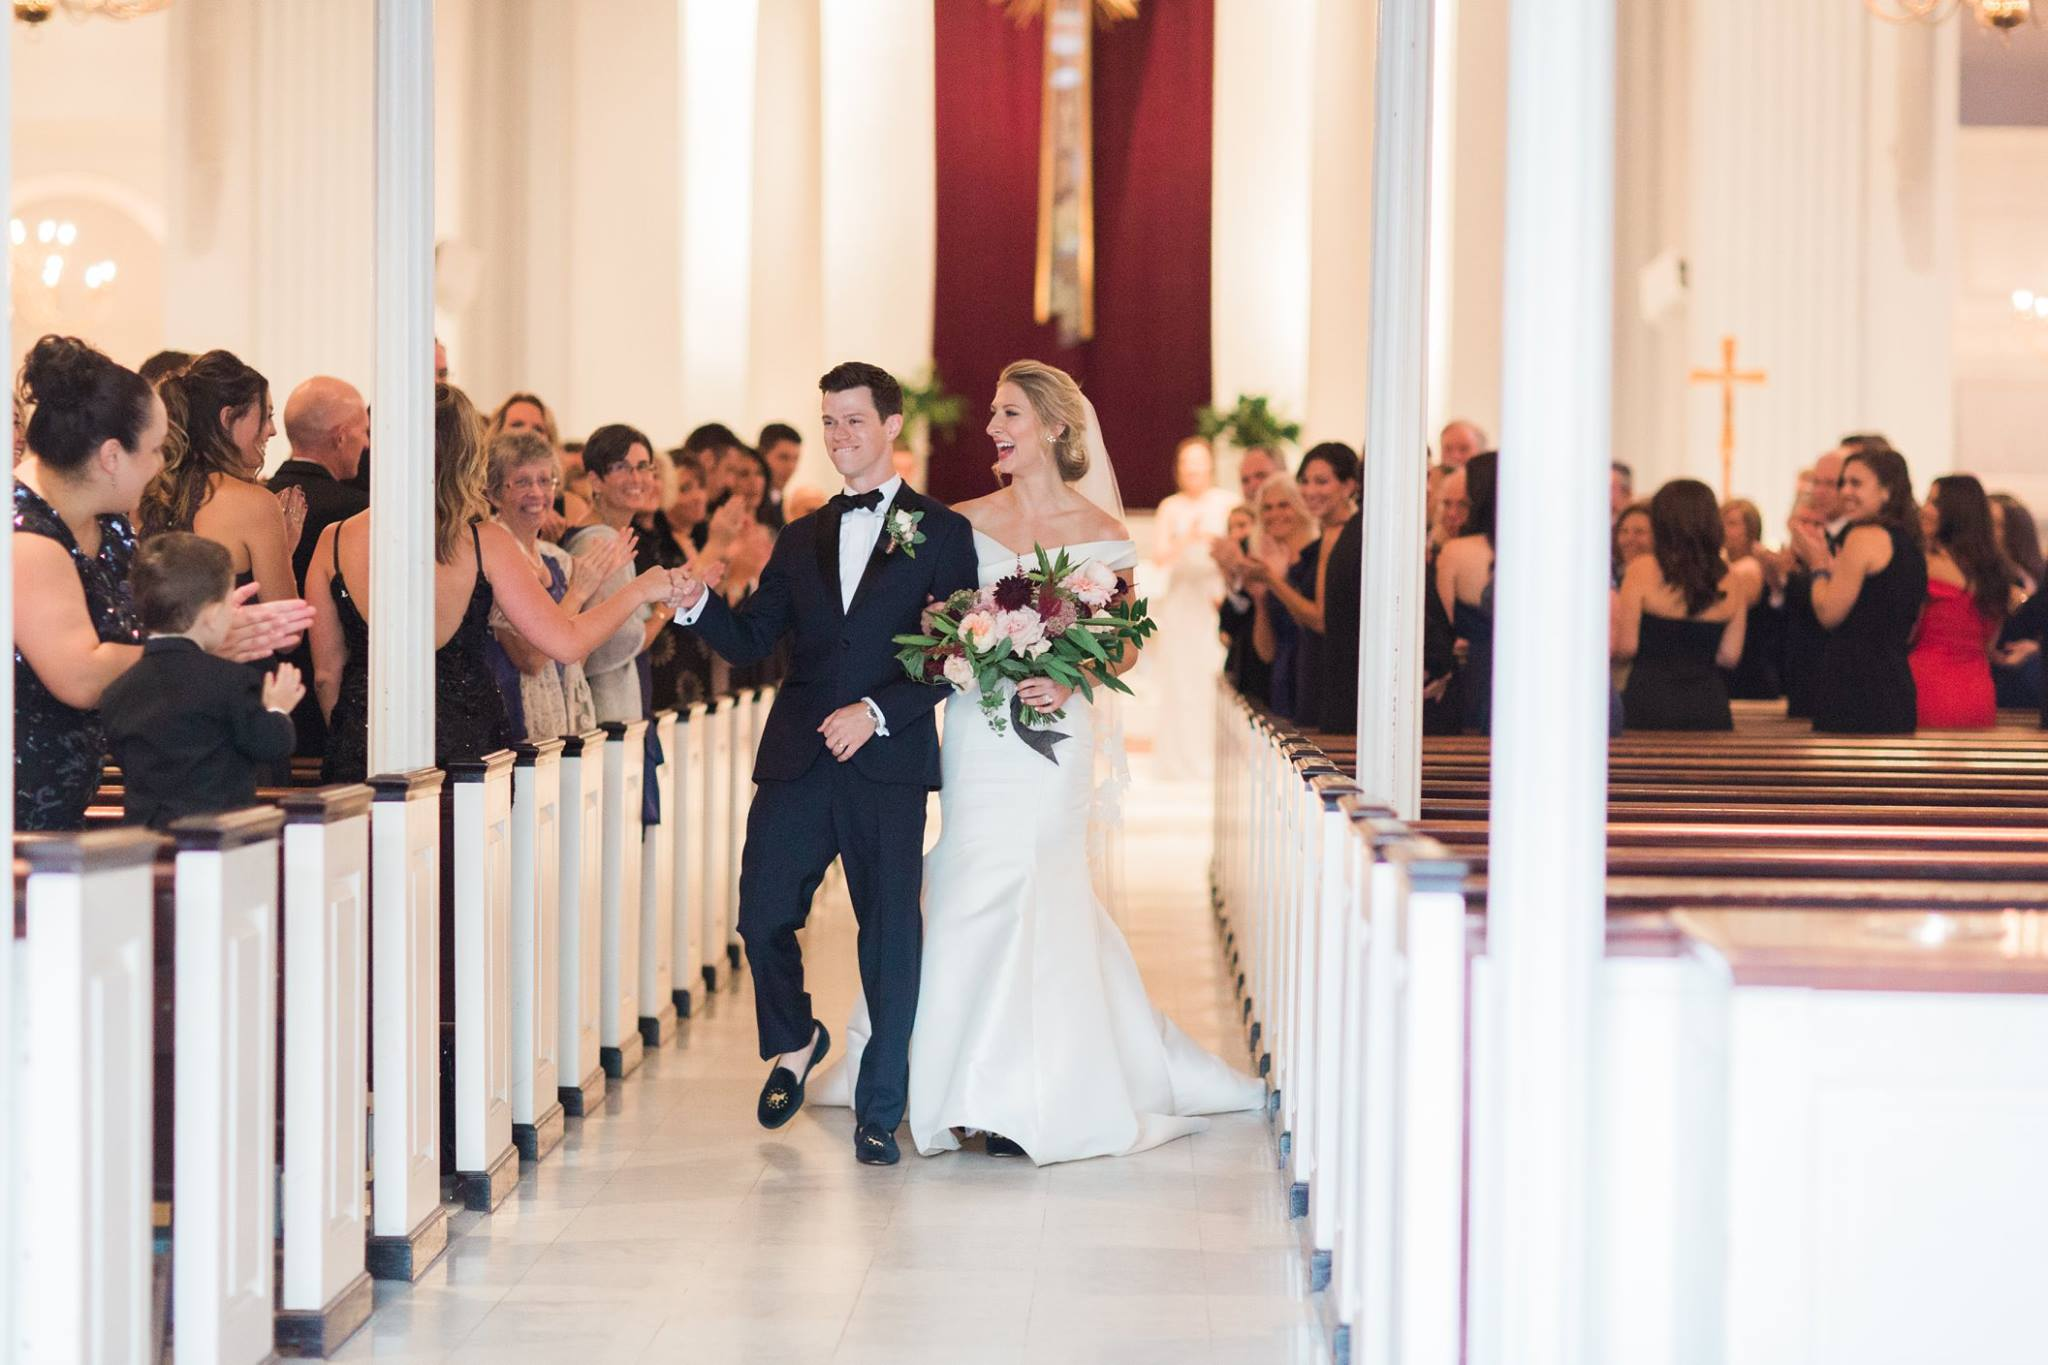 But for Erica,{ } the sanctity and tradition of her wedding ceremony was the main focus.{ } (Image: Abby Grace Photography/ abbygracephotography.com)